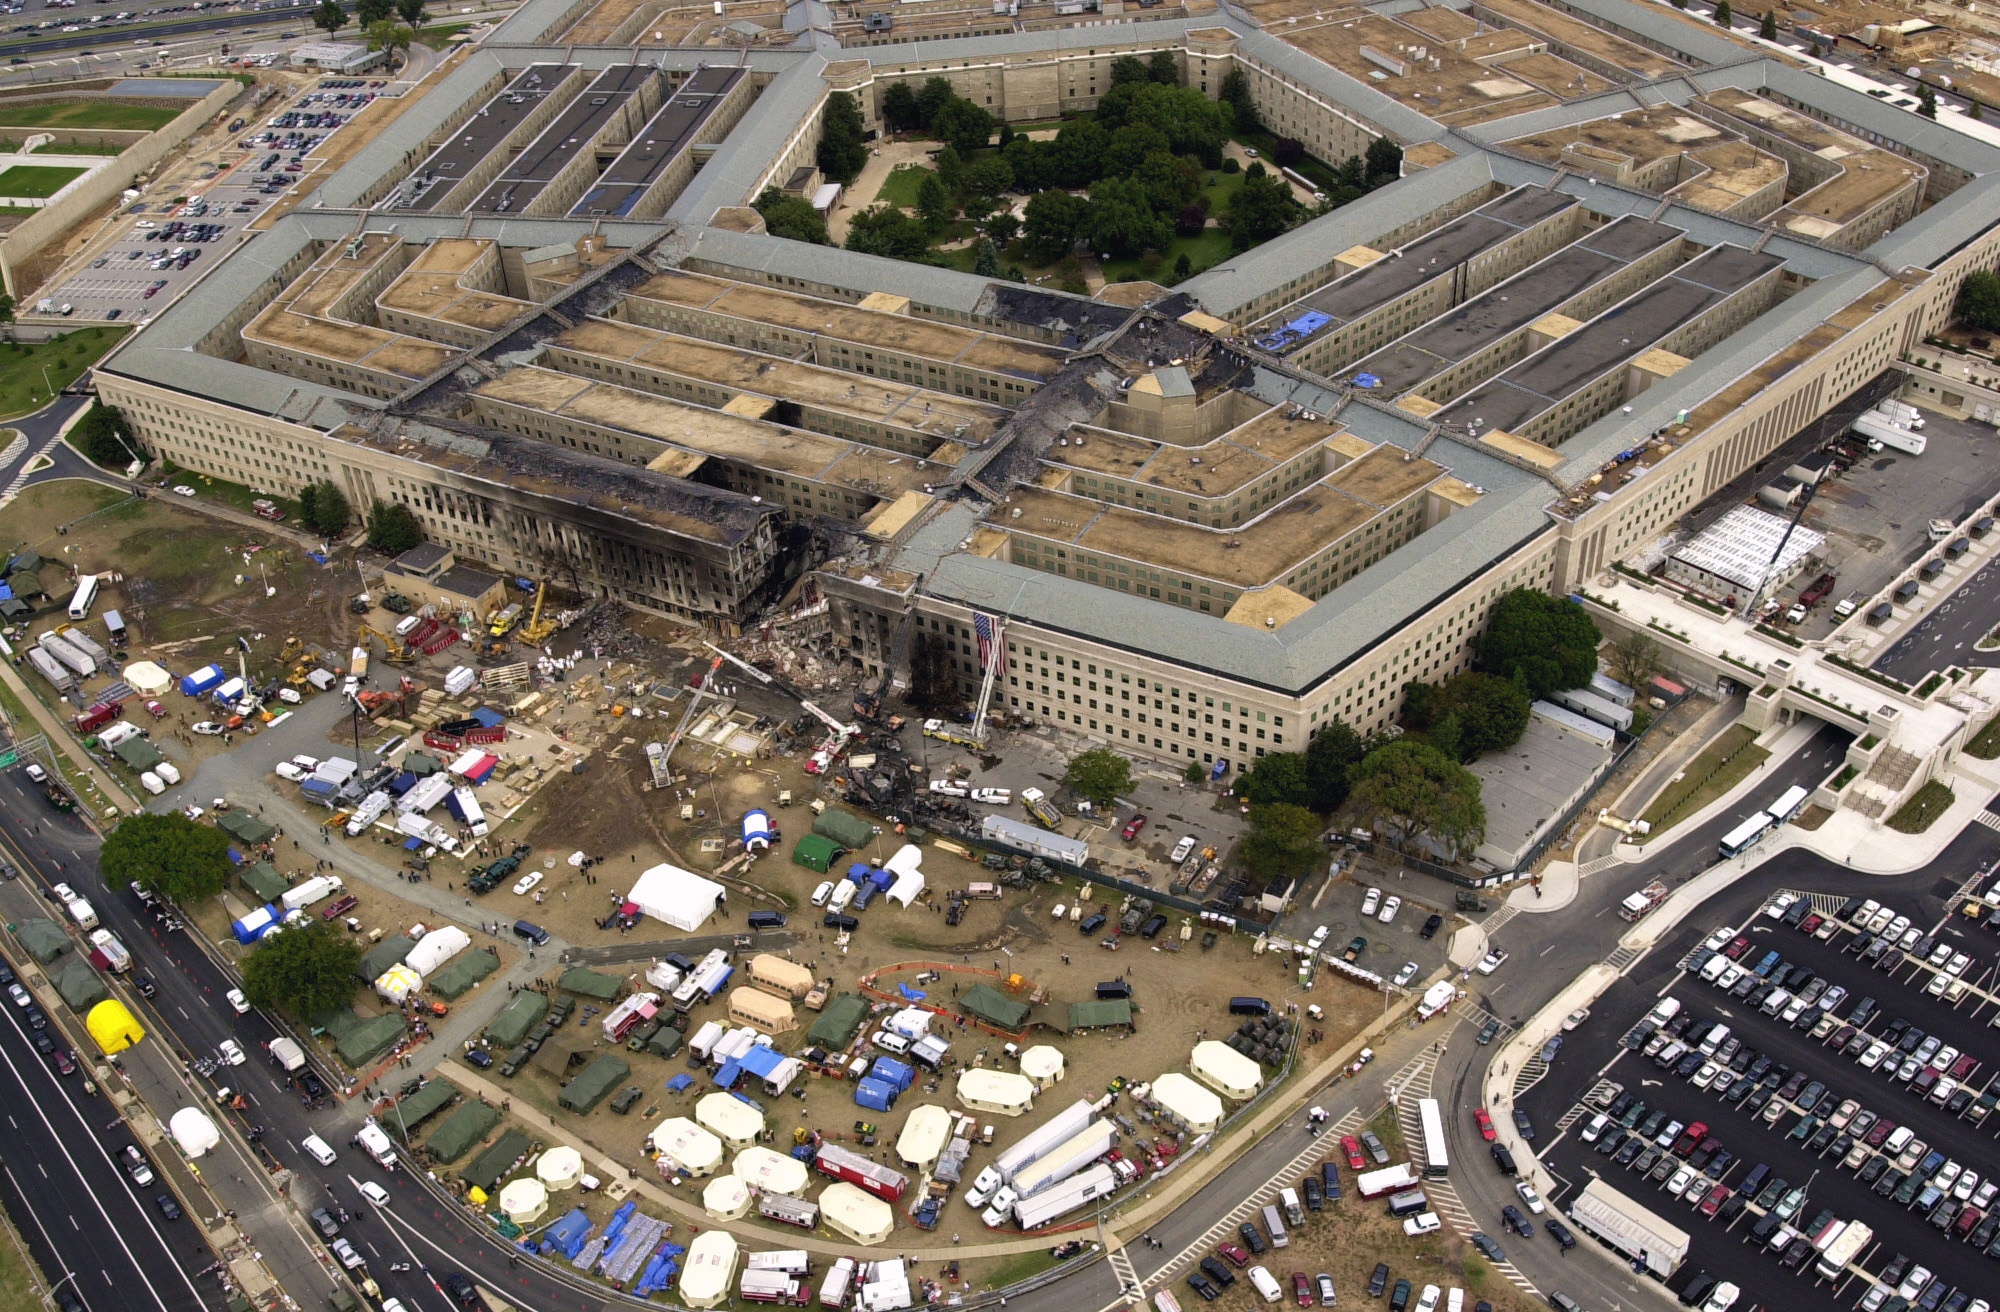 I landed in DC on September 10, 2001...and spent the next day in a Pentagon blood bank.